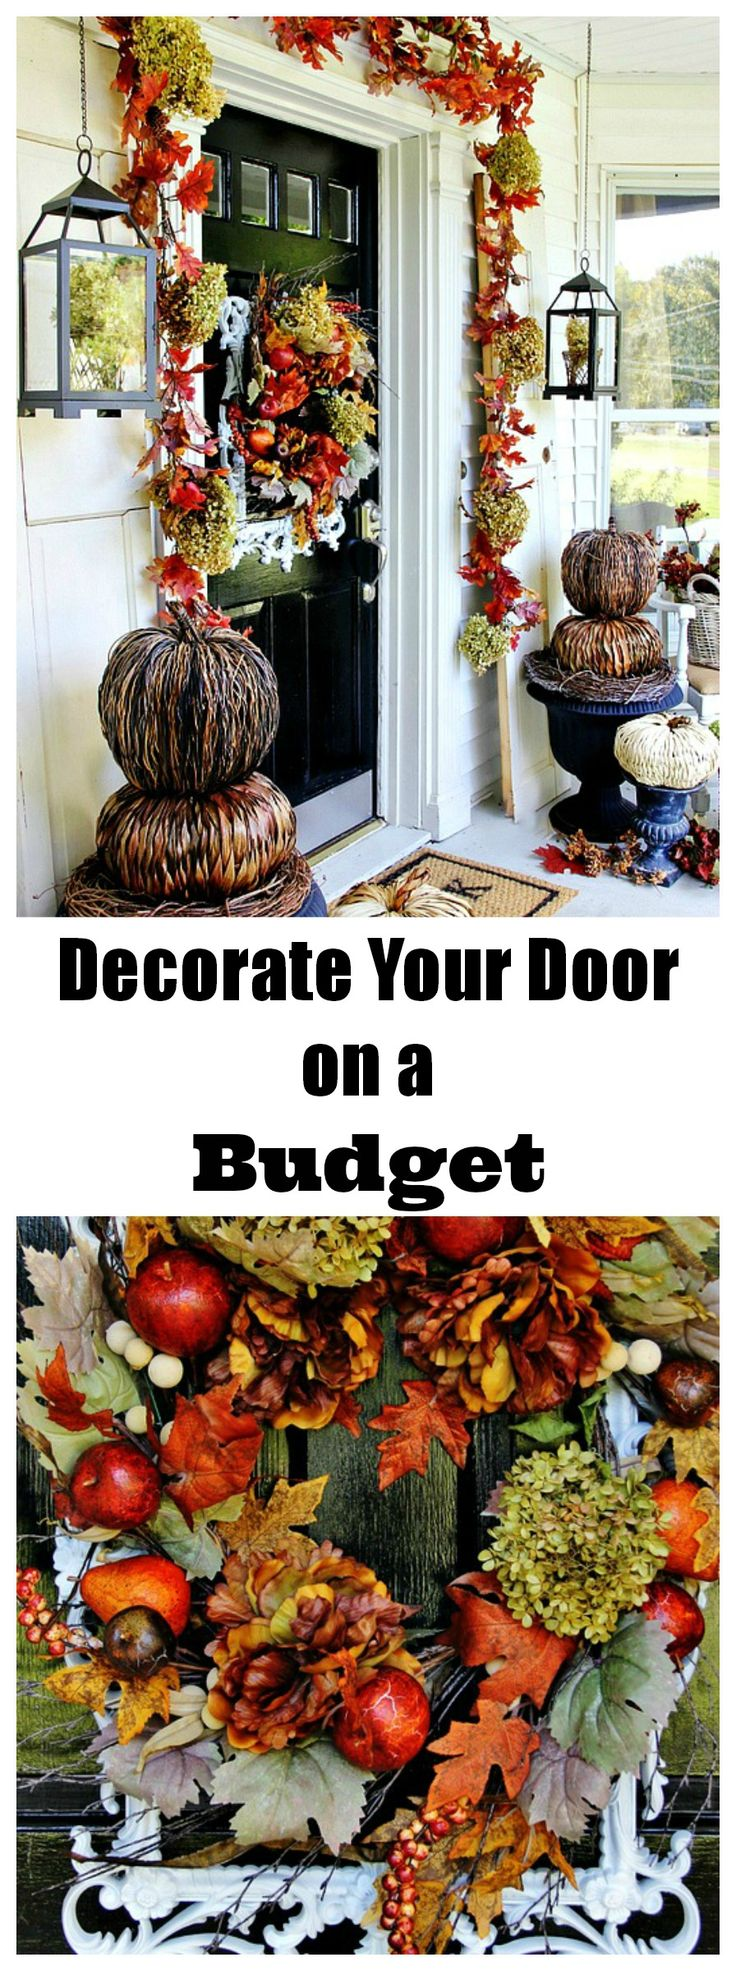 Five easy projects for decorating your front door for fall. Love the idea of making a pumpkin topiary! thistlewoodfarms.com